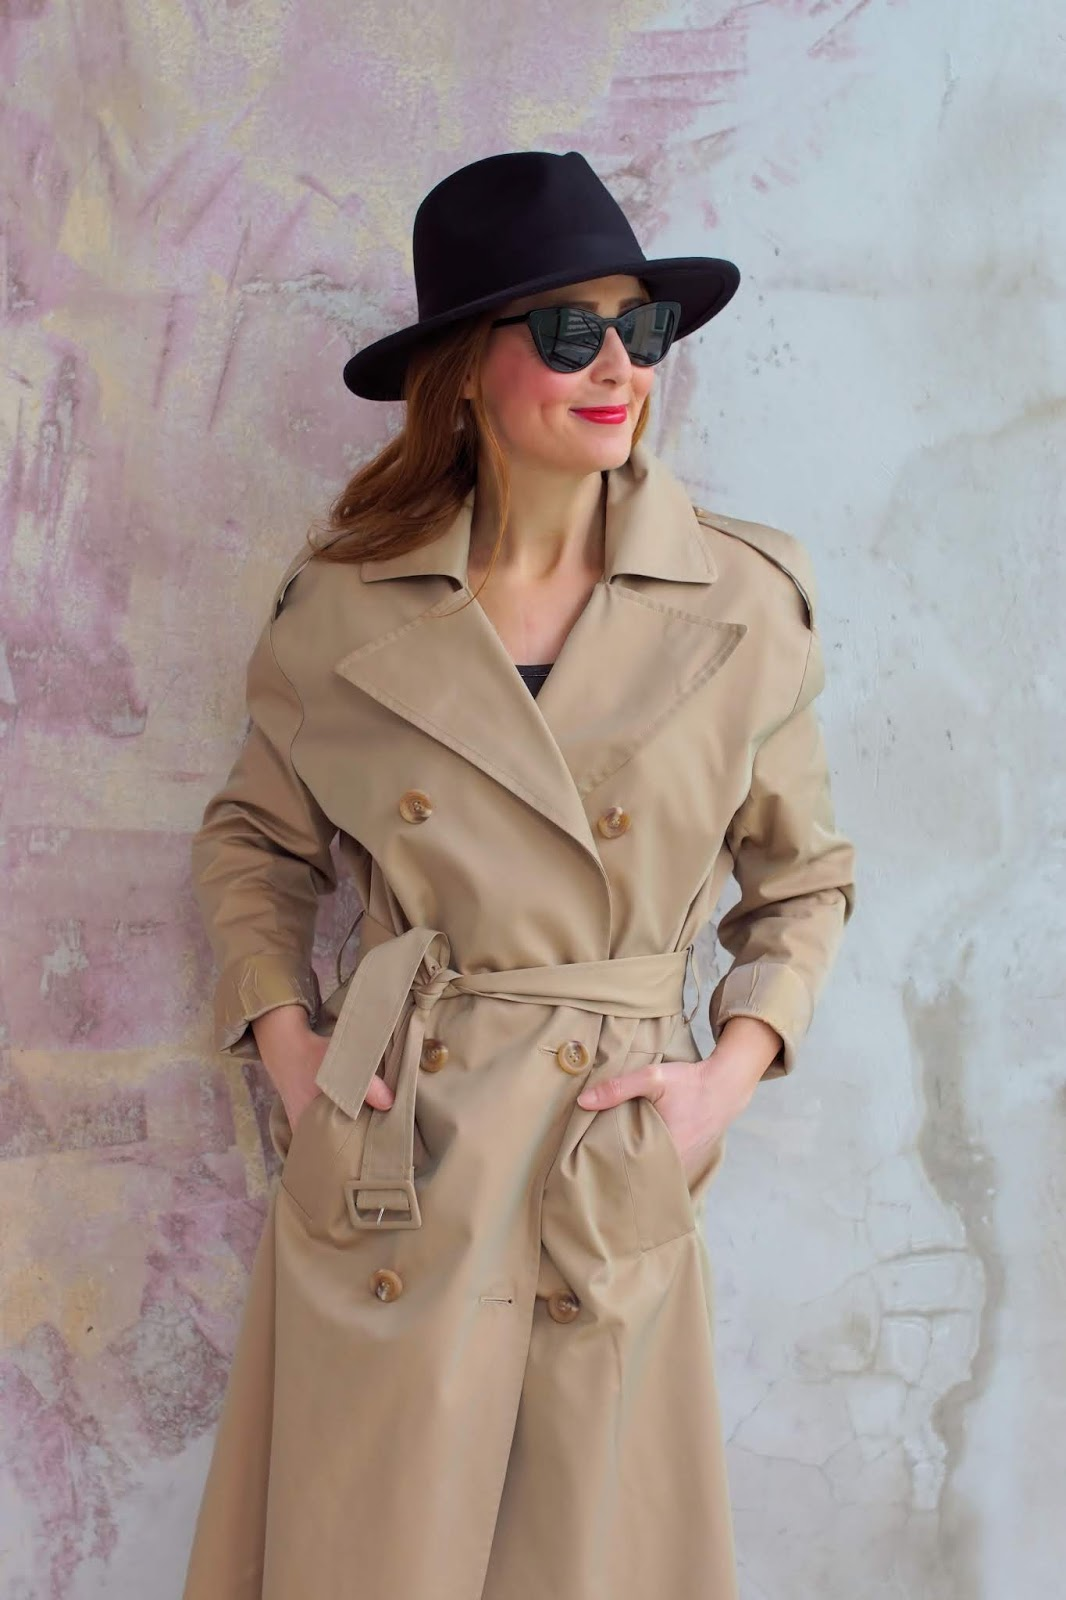 Clothes I haven't worn during Quarantine lockdown: The trench coat on Fashion and Cookies fashion blog, fashion blogger style